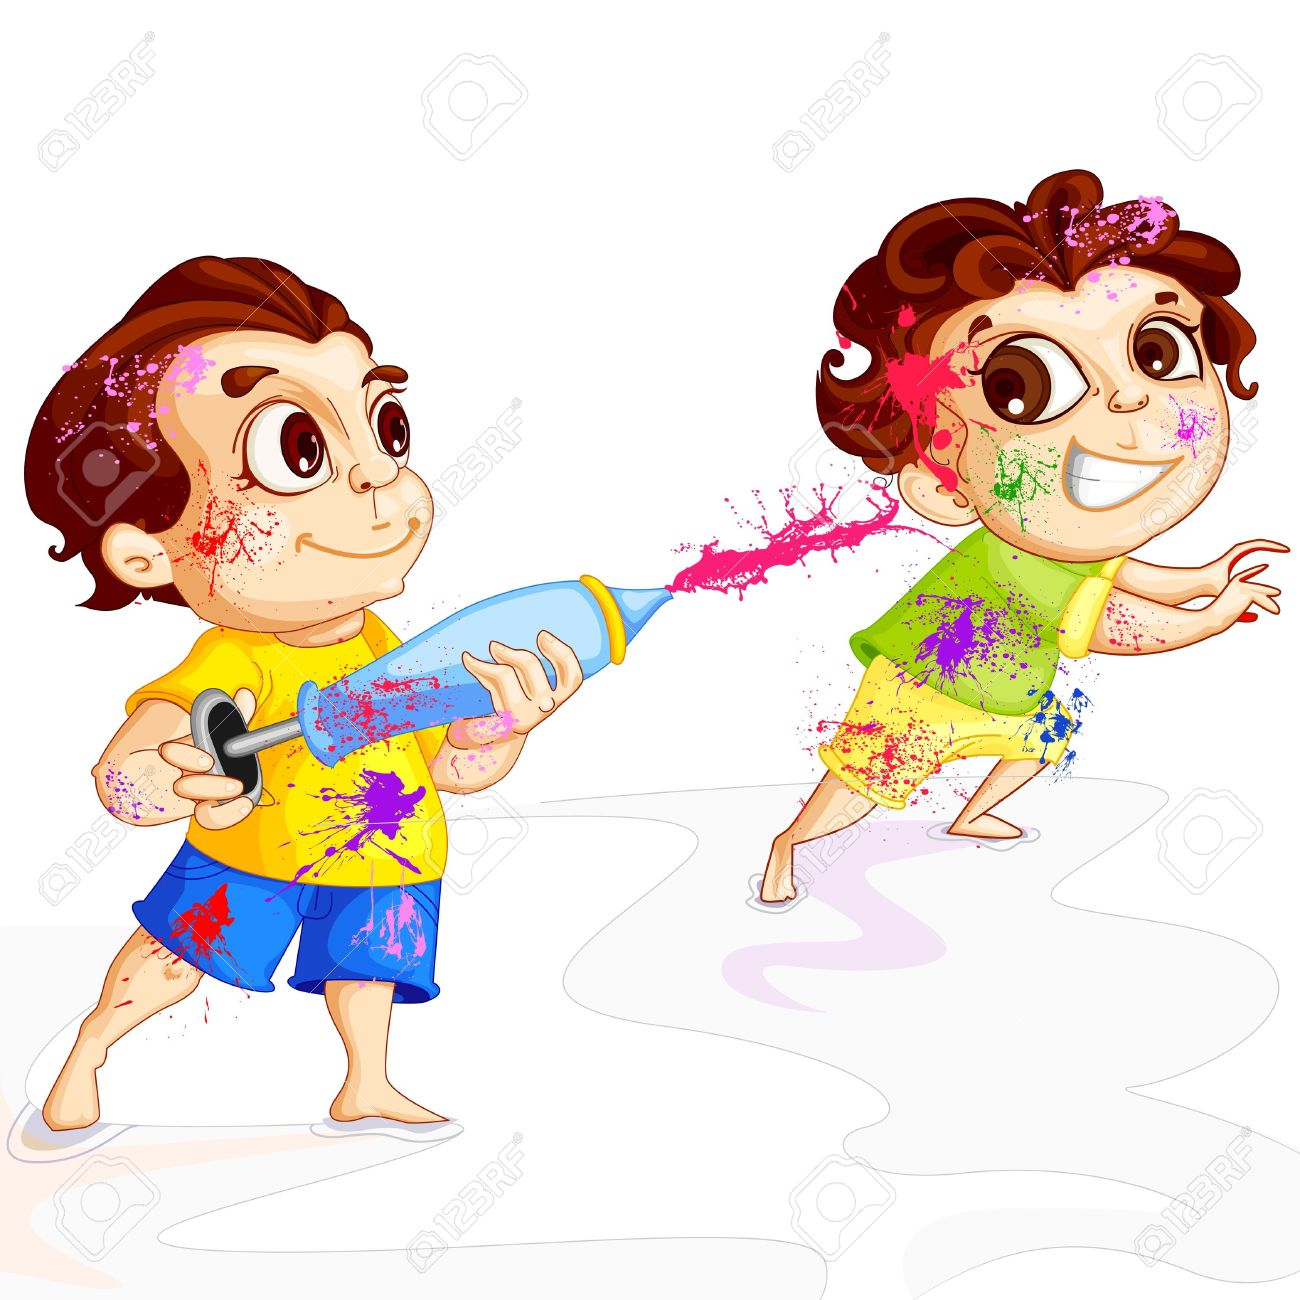 Holi images hd clipart